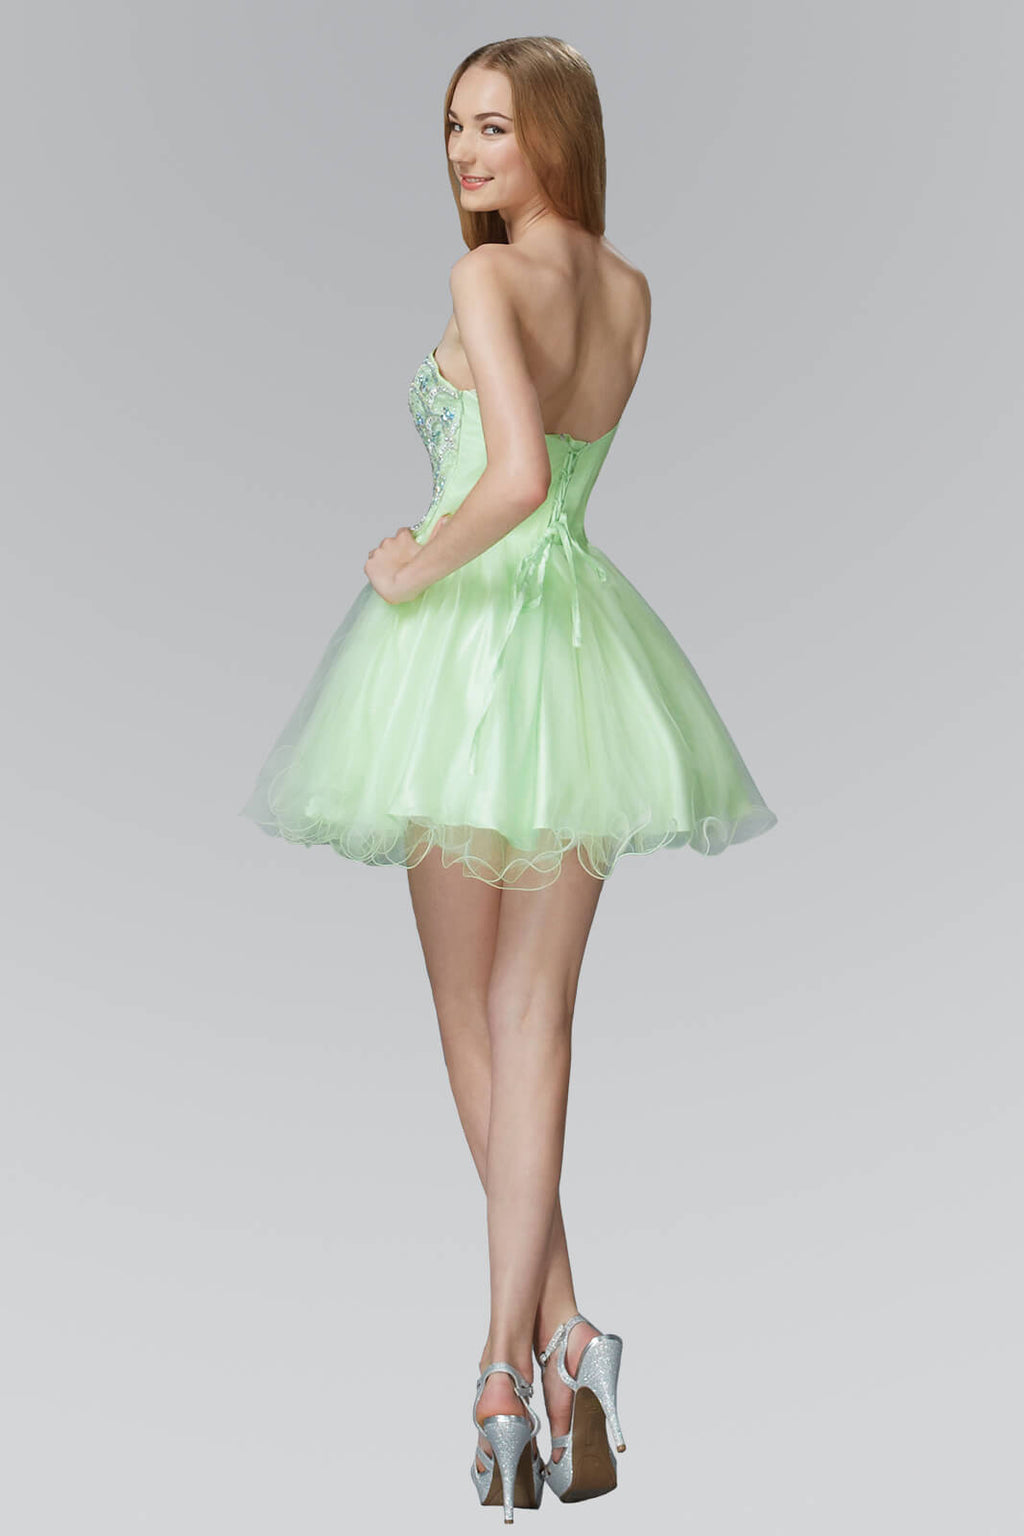 Strapless Short Prom Dress Homecoming - The Dress Outlet